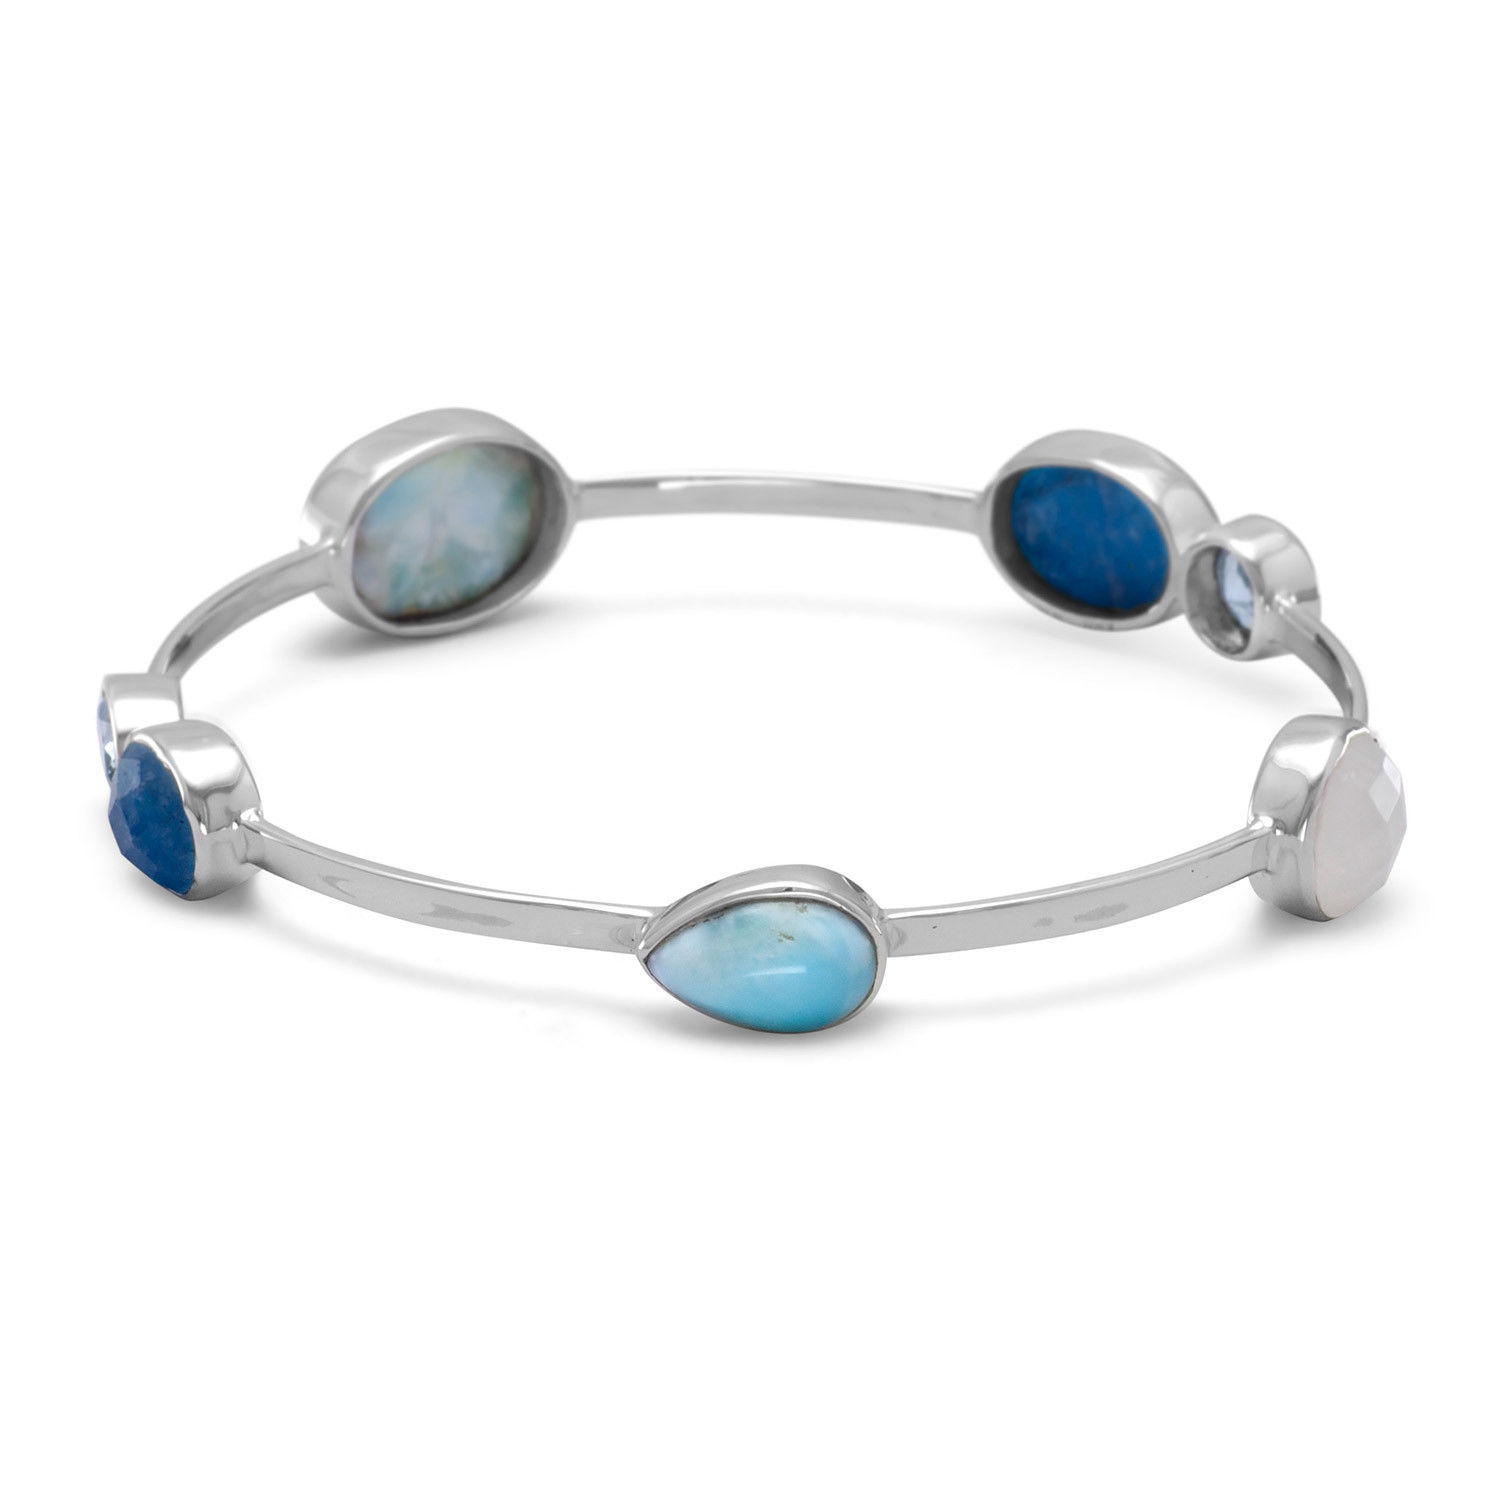 Primary image for Women's Sterling Silver Blue Topaz Multistone Stackable Bangle Bracelet